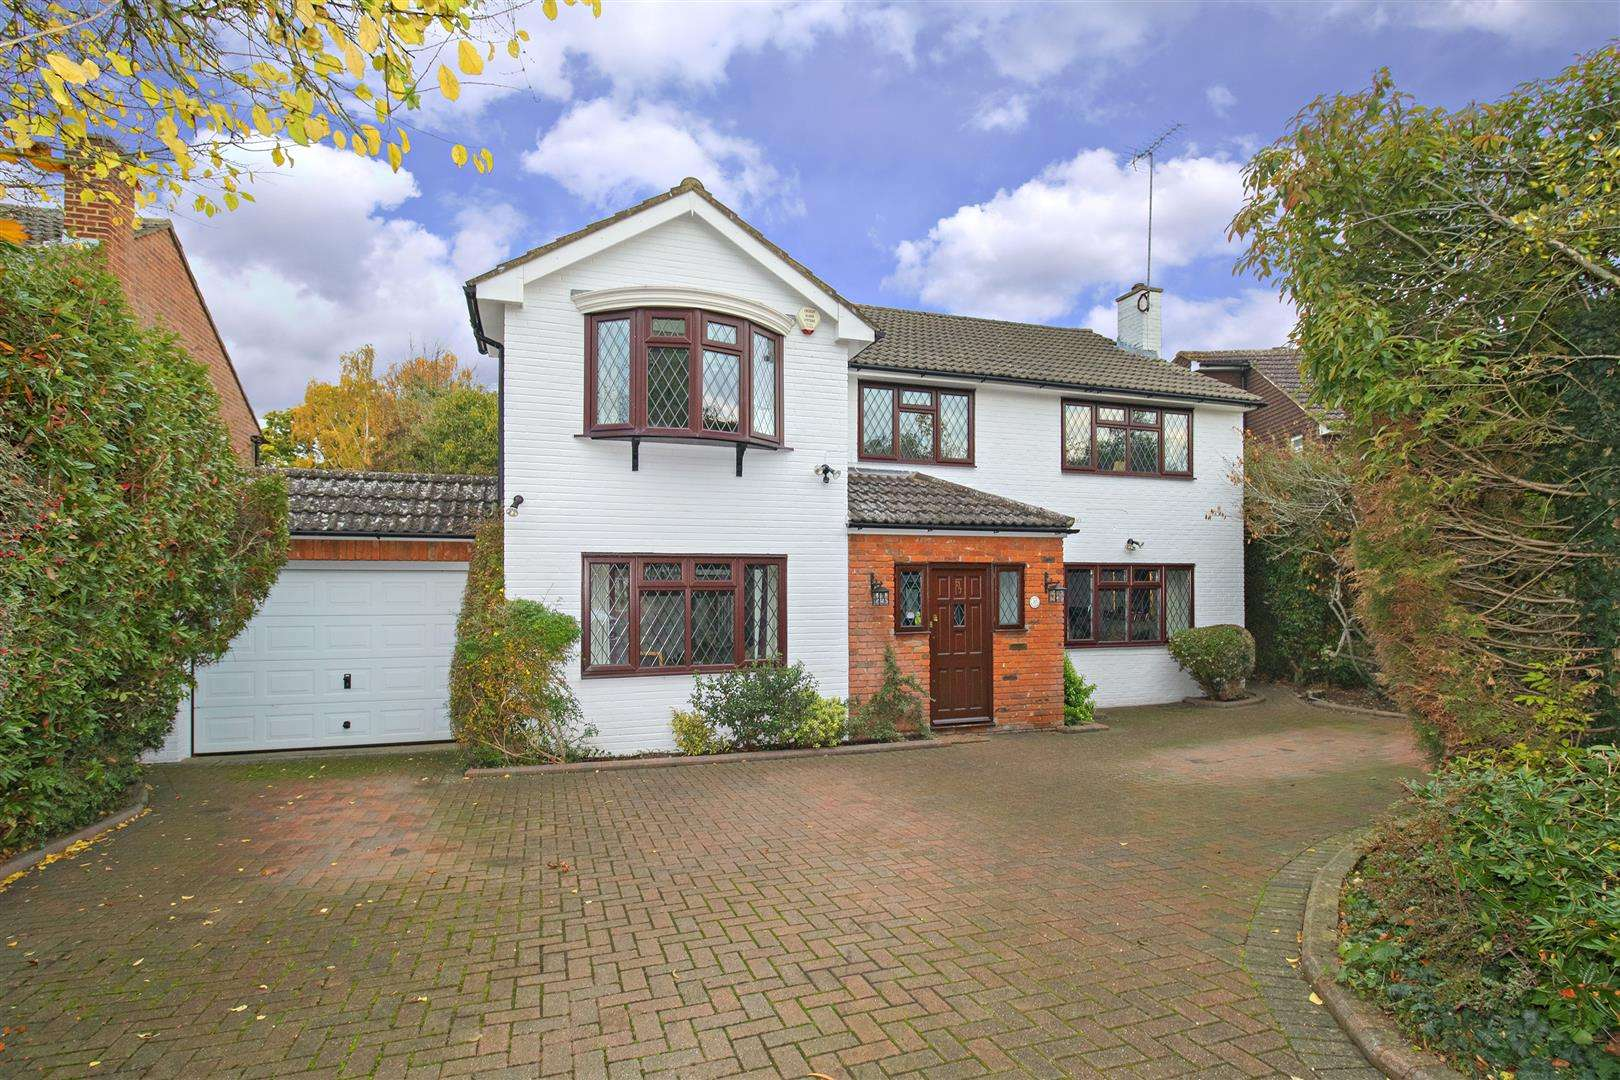 5 bed for sale - Property Image 1